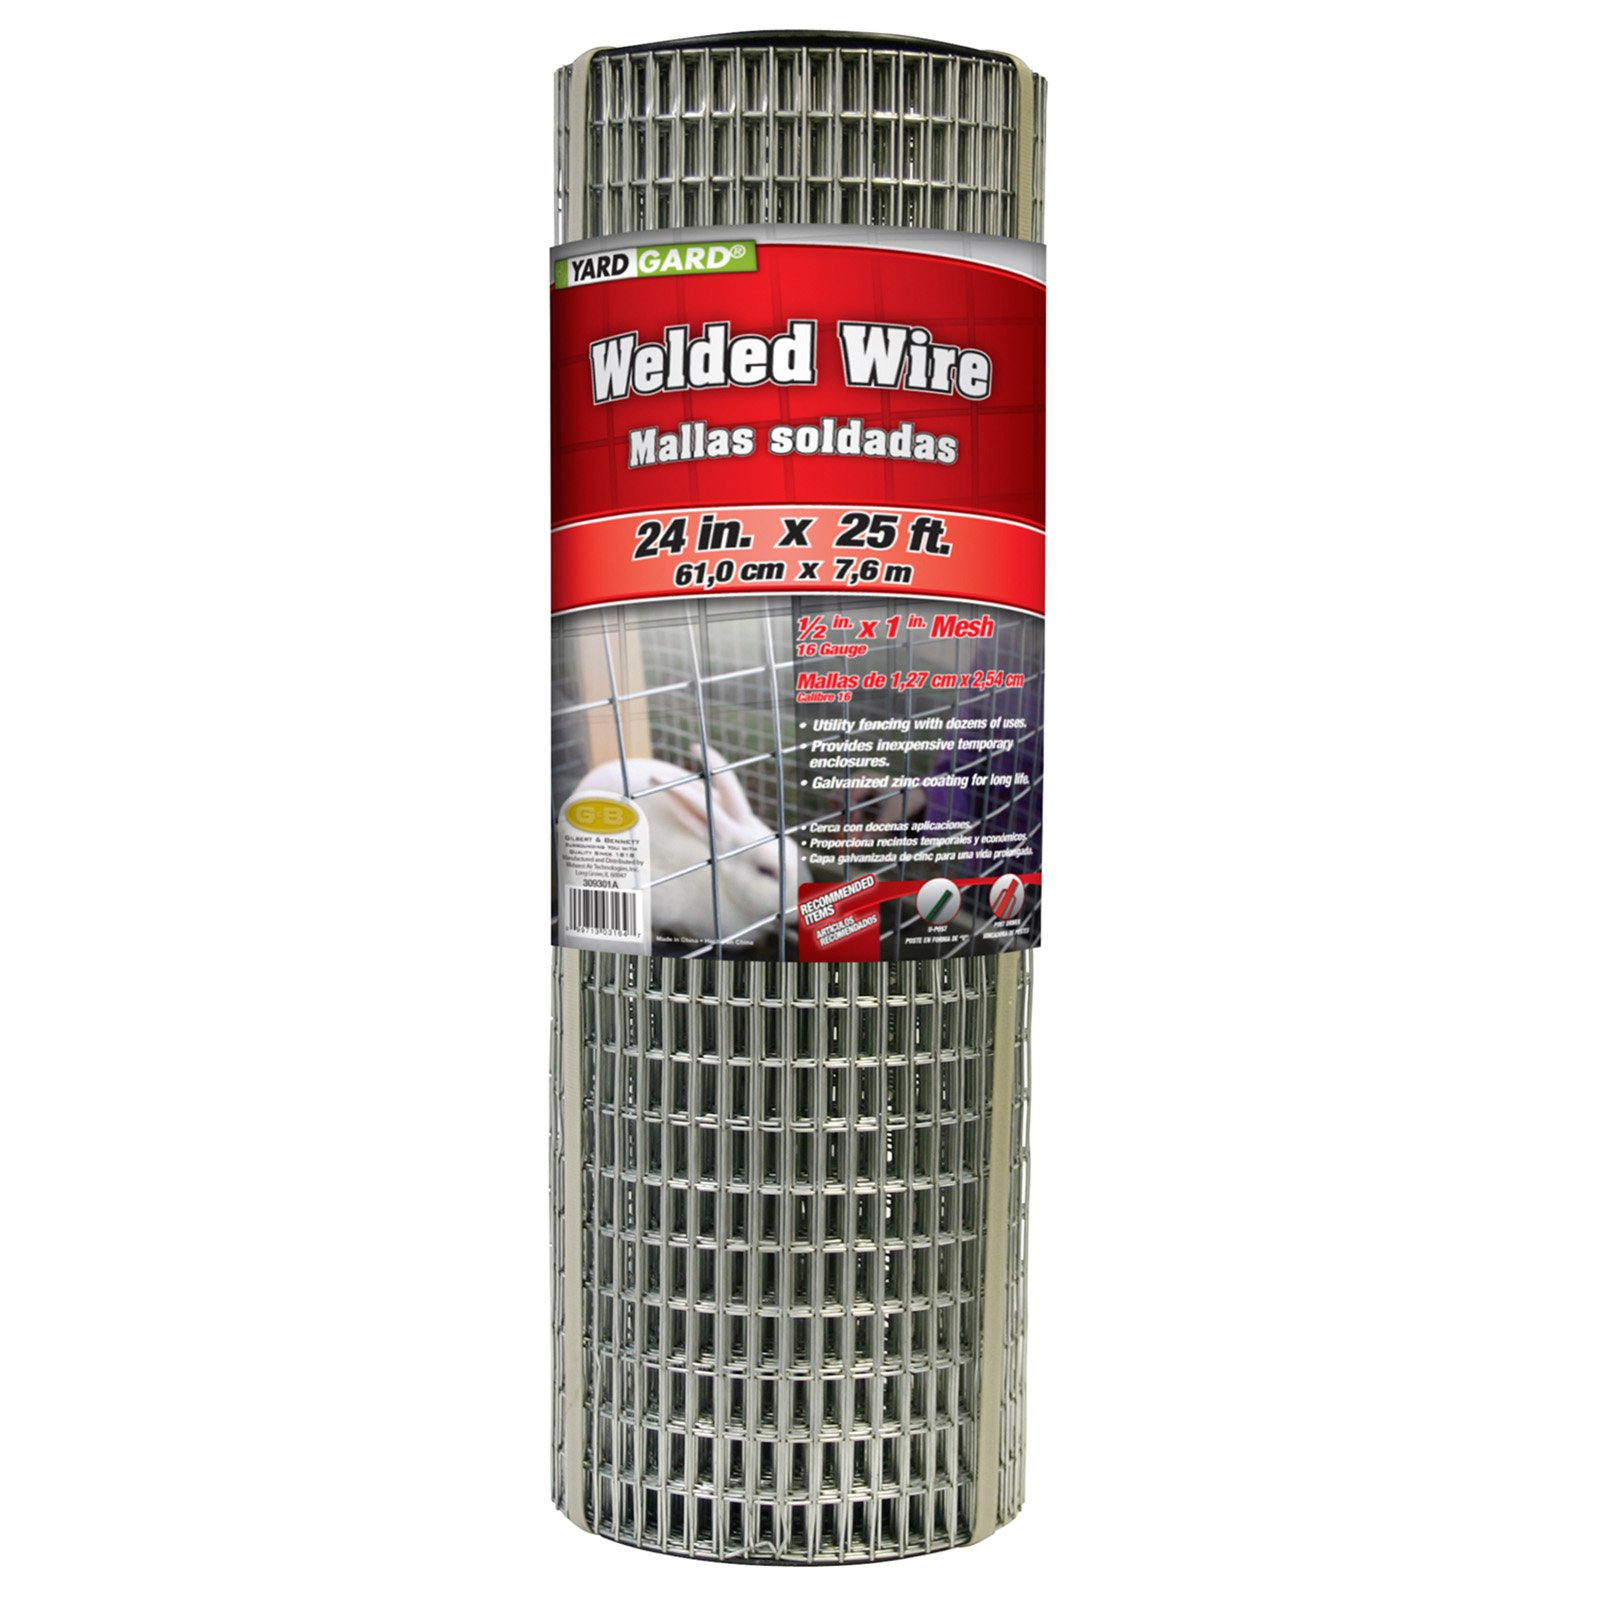 Yard Gard Mesh Galvanized Welded Wire - Walmart.com